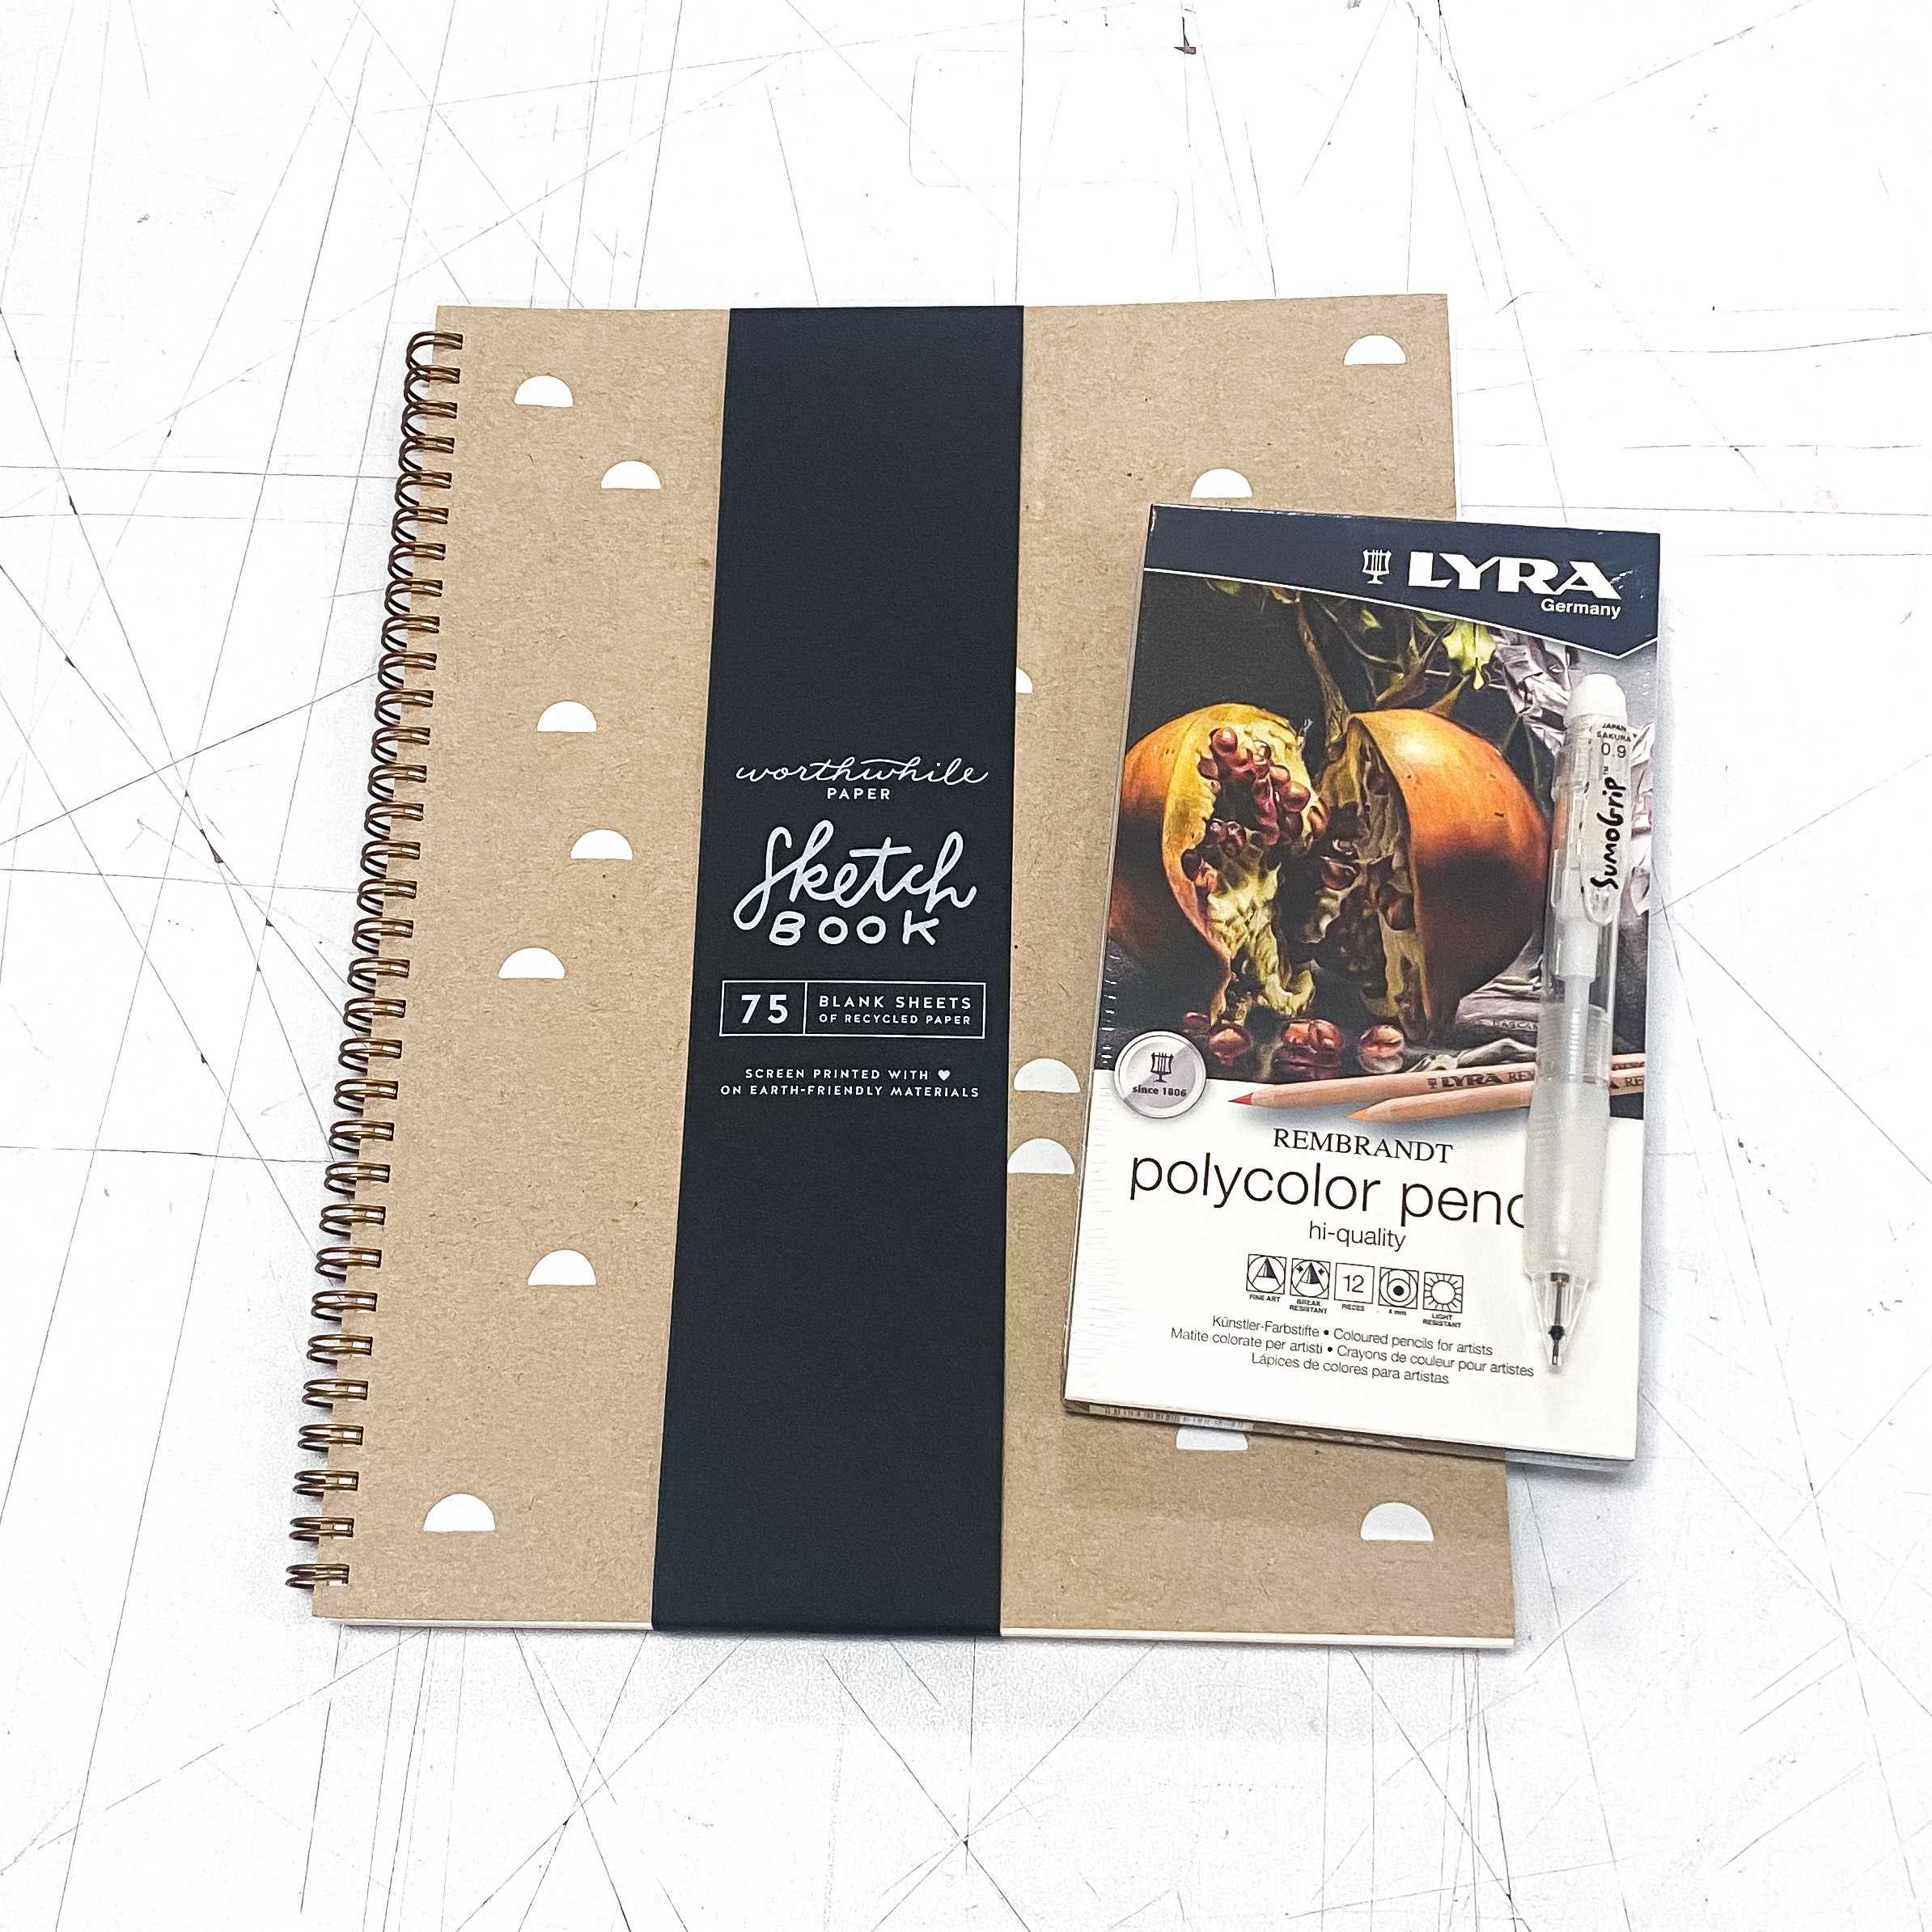 The Worthwhile Colored Pencil Sketch Kit